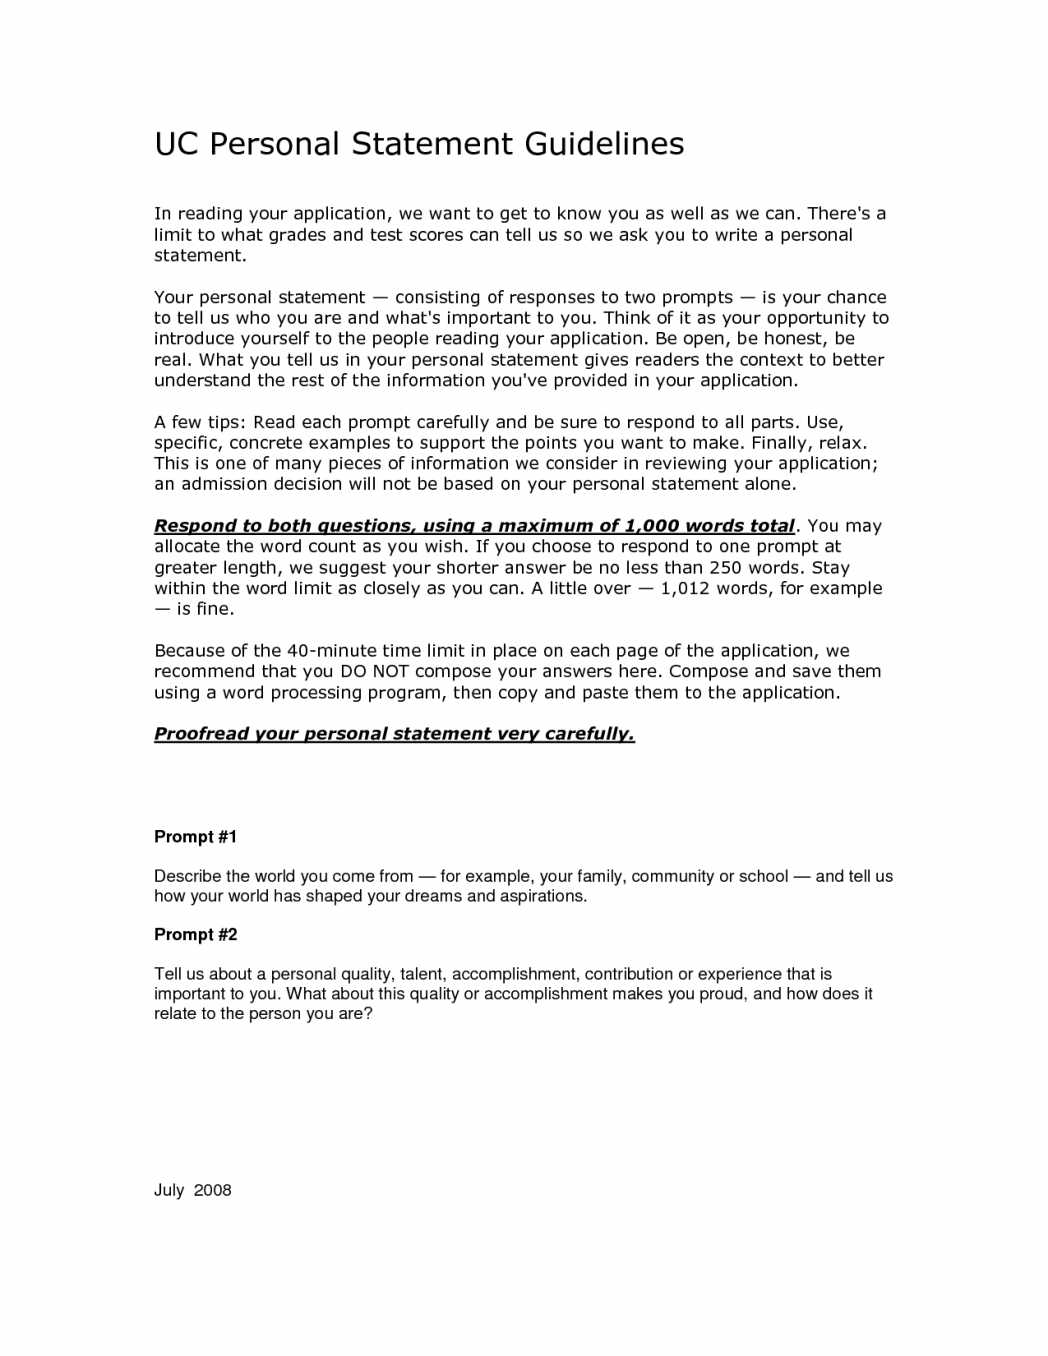 012 Stanford Essay Prompts Help Admission College Mba Resume Communitys Of Uc Personal Statements Template Cm3 1048x1356 Phenomenal Examples Application Full